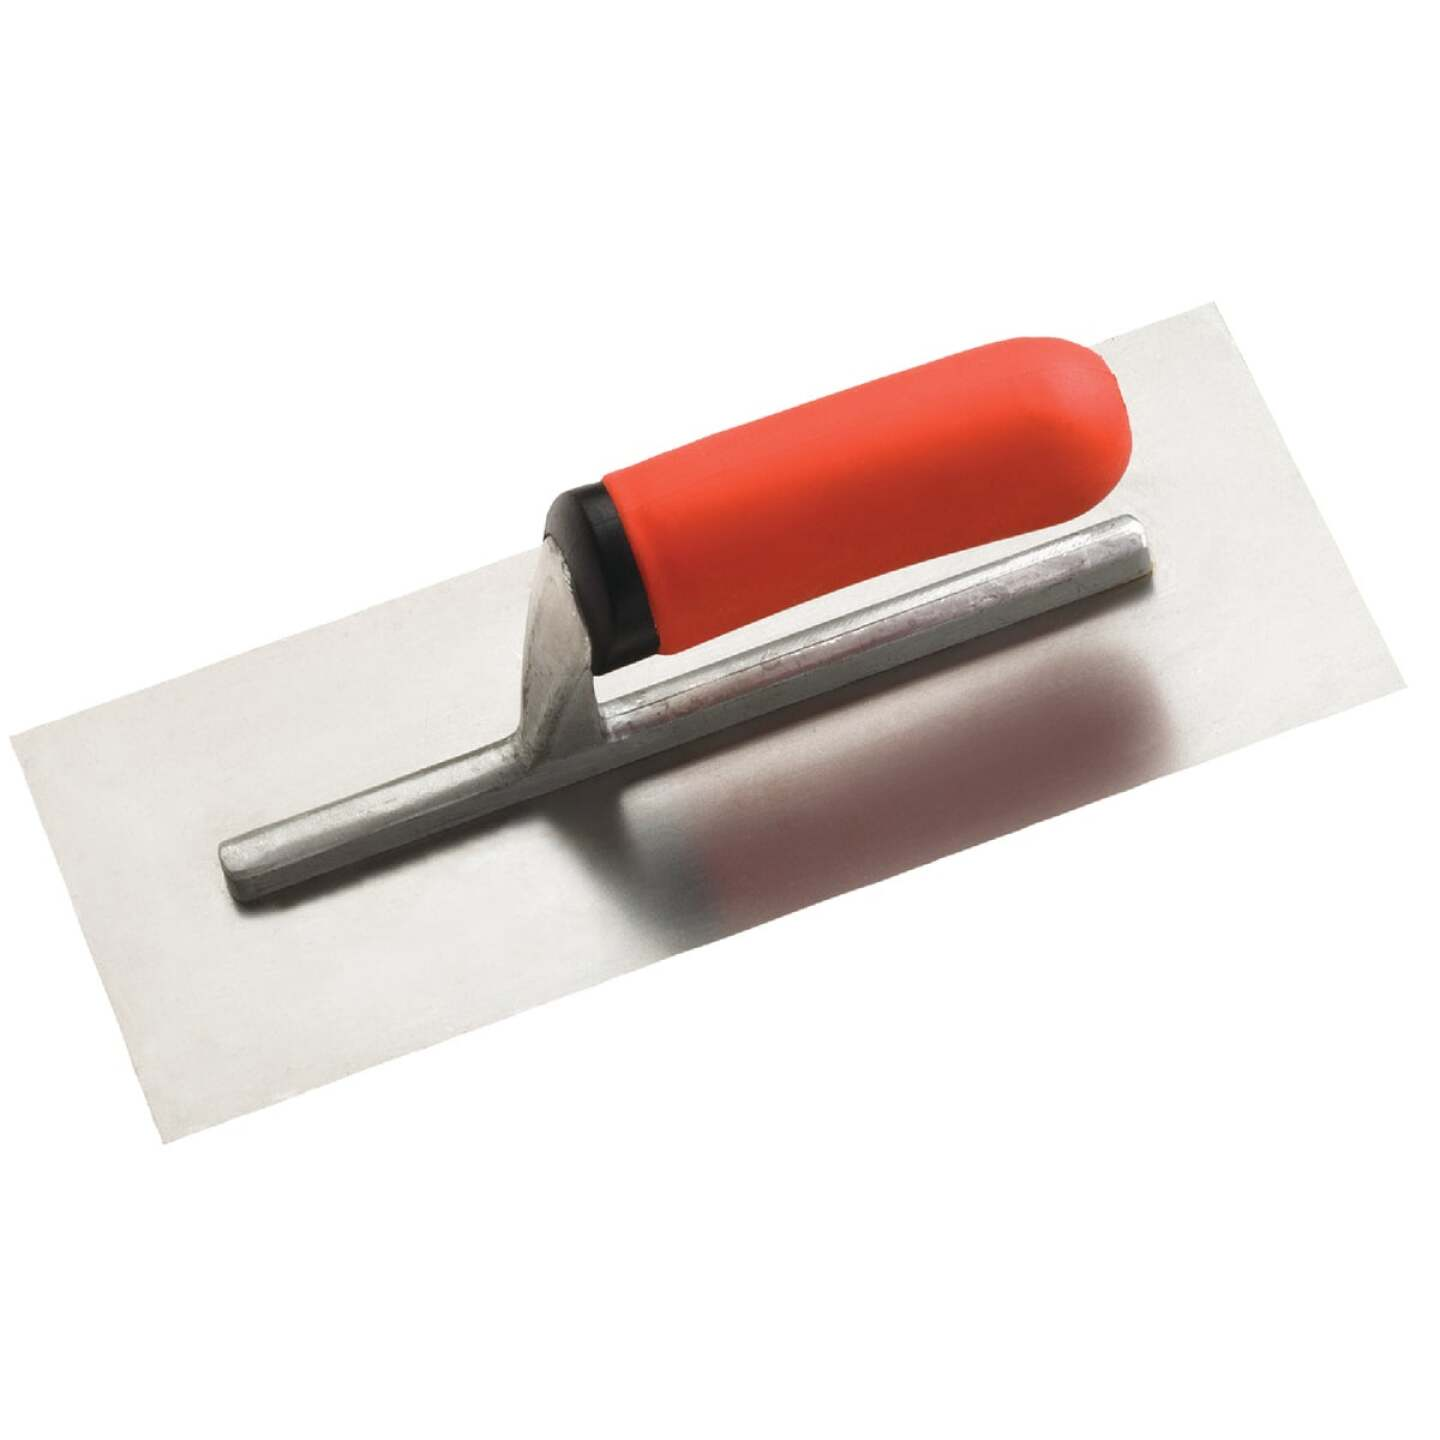 Do it Best 4-1/2 In. x 11 In. Finishing Trowel with Ergo Handle Image 1